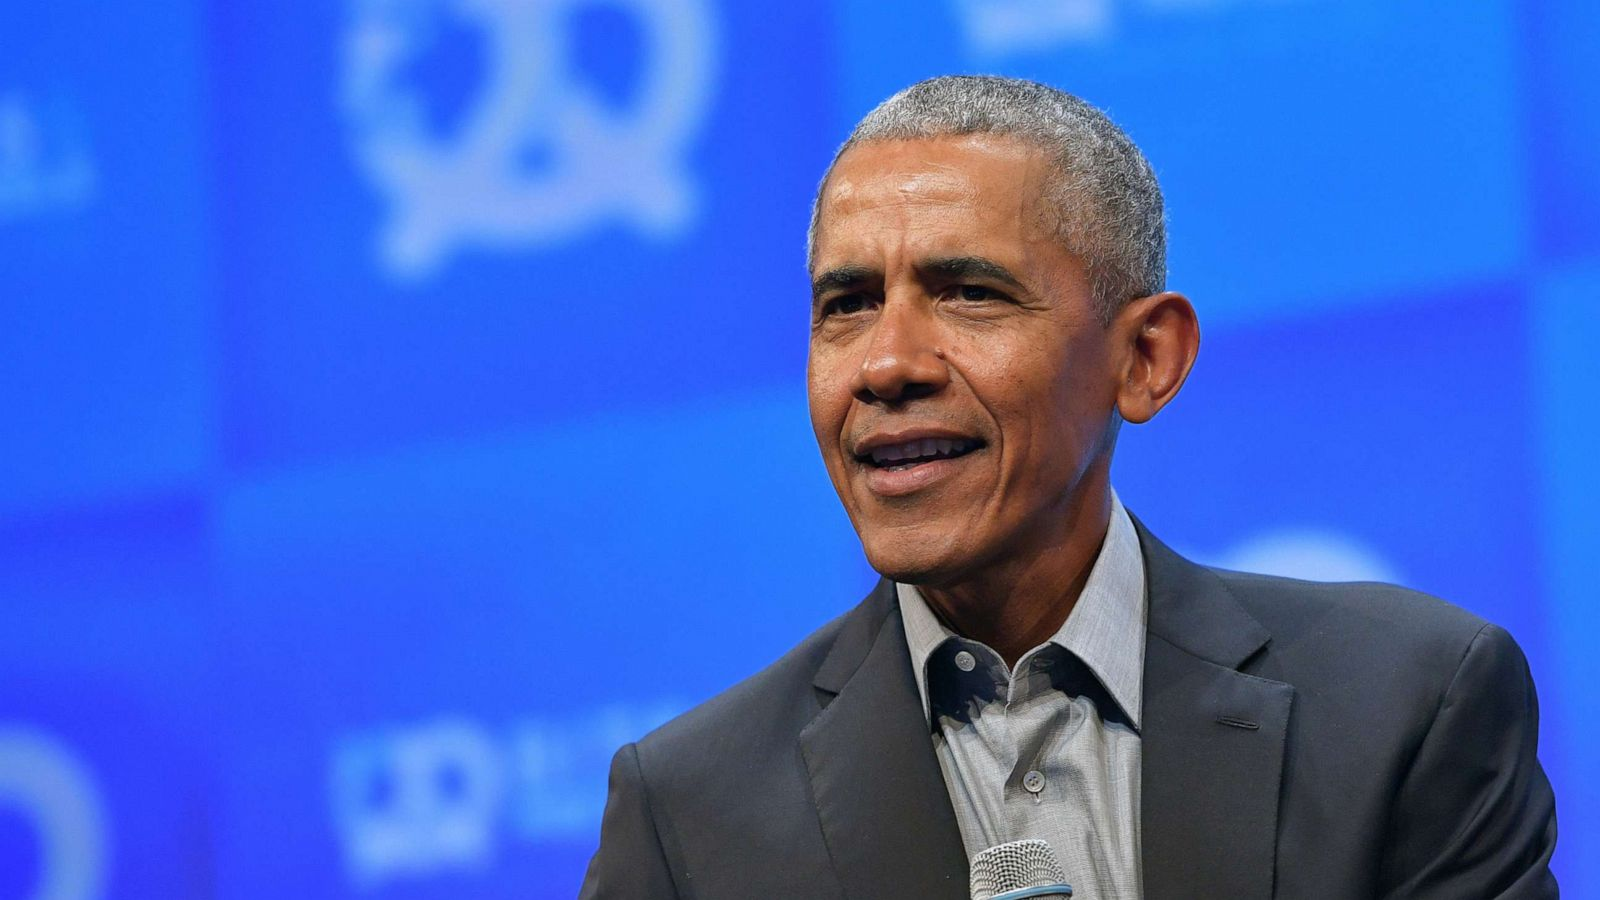 Barack Obama Talks About his new book